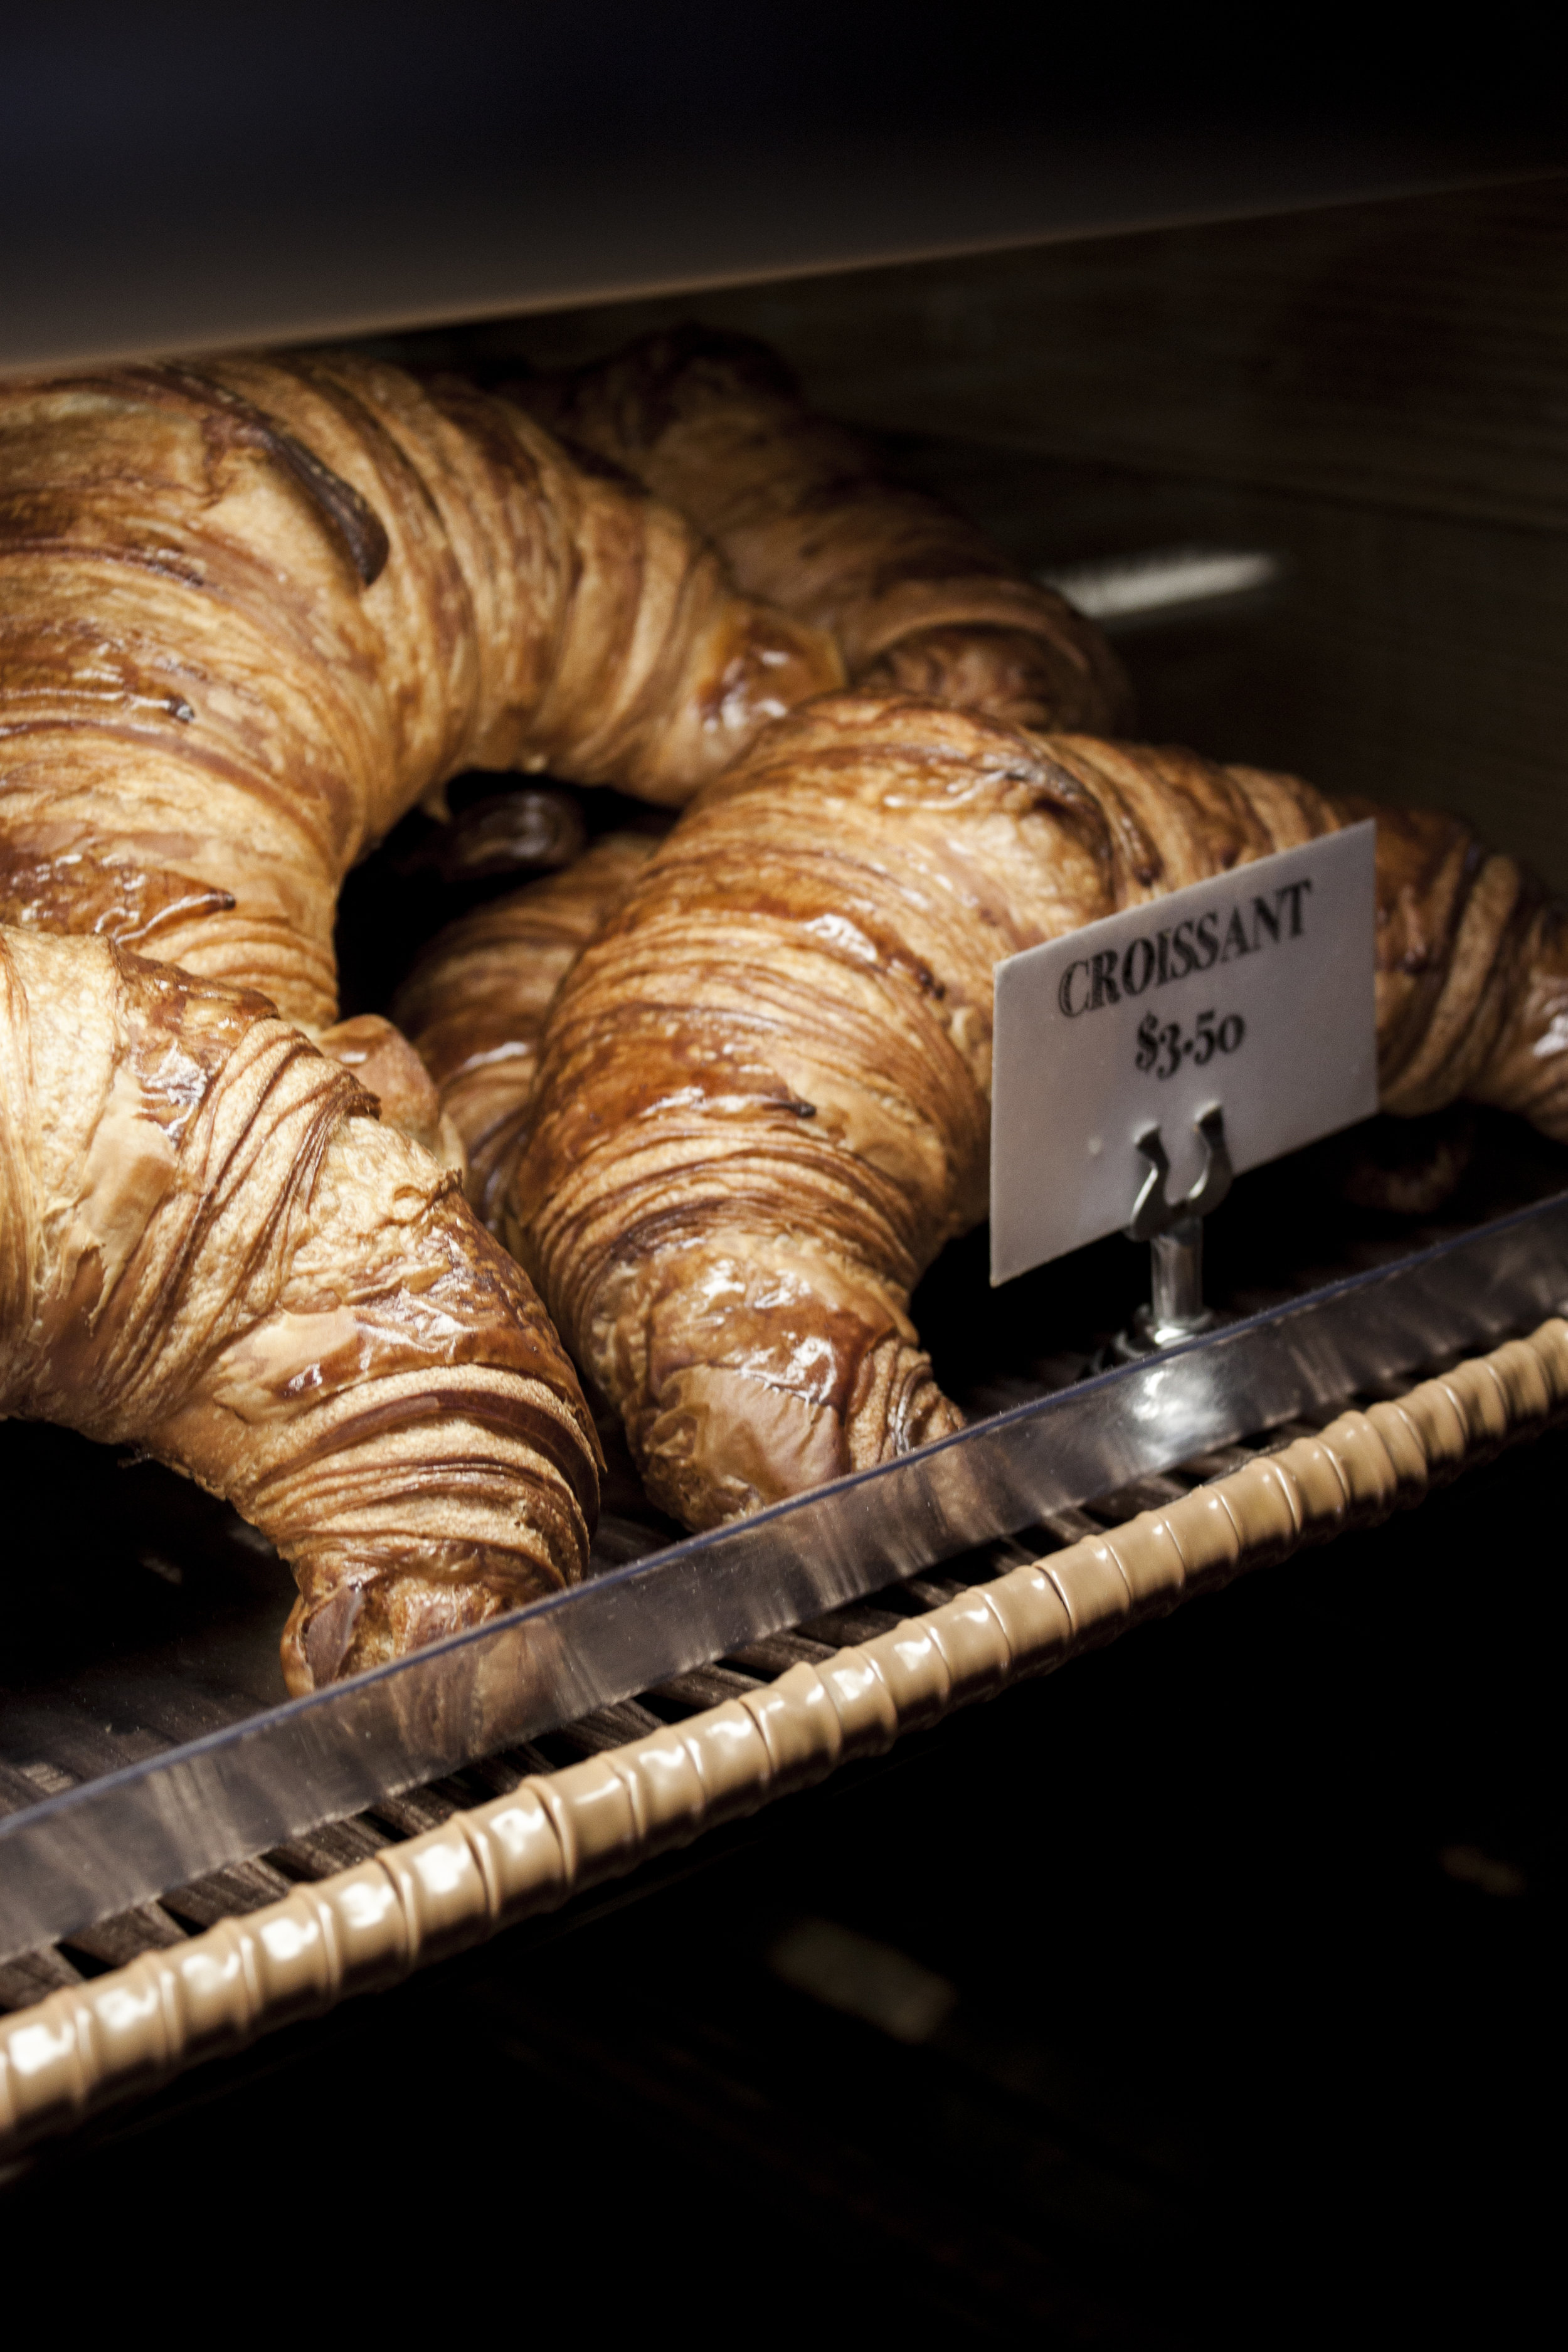 bob's well bread bakery, best california bakeries, los alamos restaurants, los alamos ca, where to eat in los alamos, los alamos travel guide, los alamos dining, best almond croissant